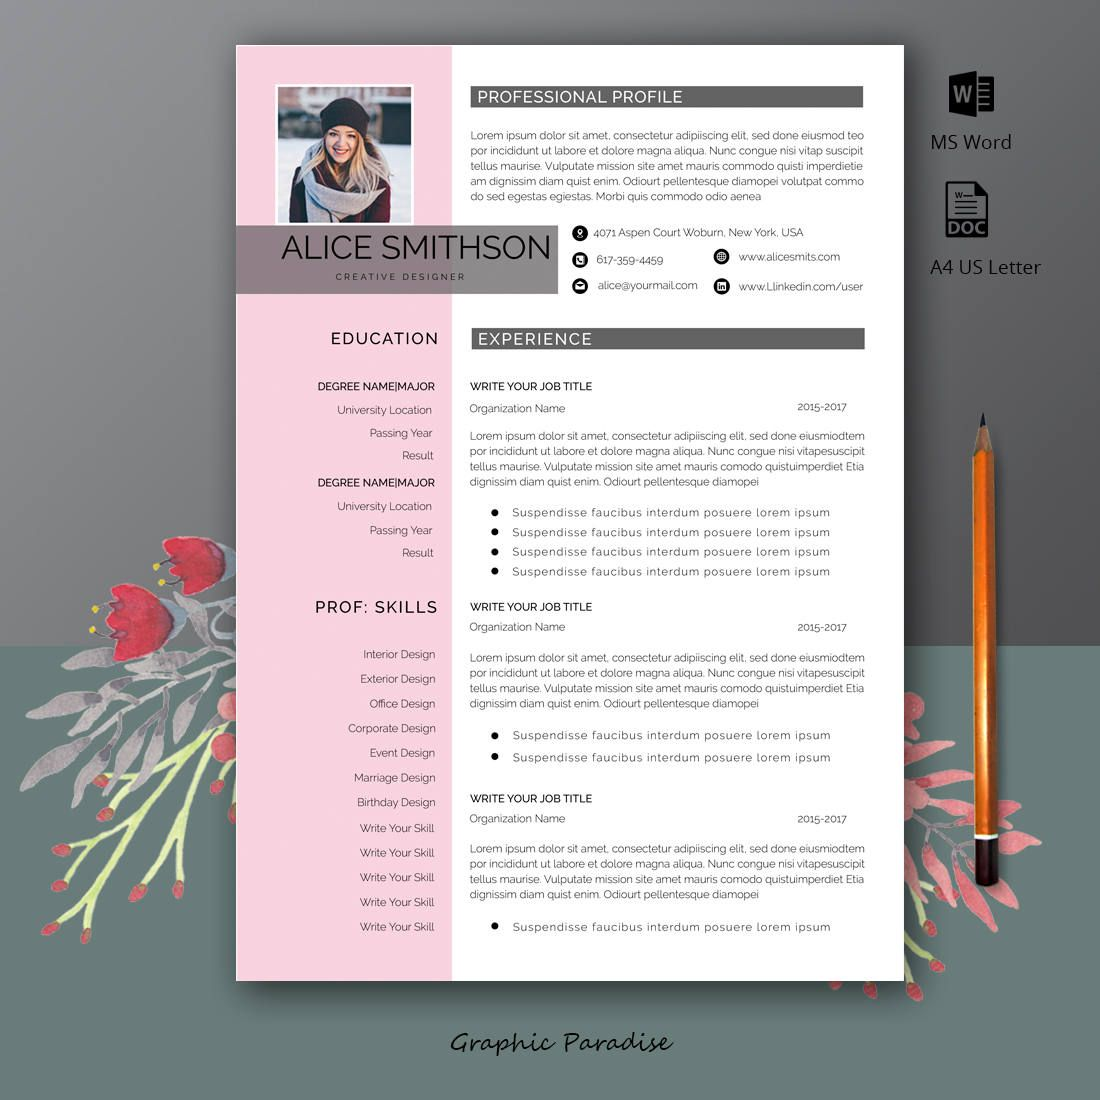 Professional Resume Template Instant Download, Resume With Photo, Resume  Template, Resume Design,